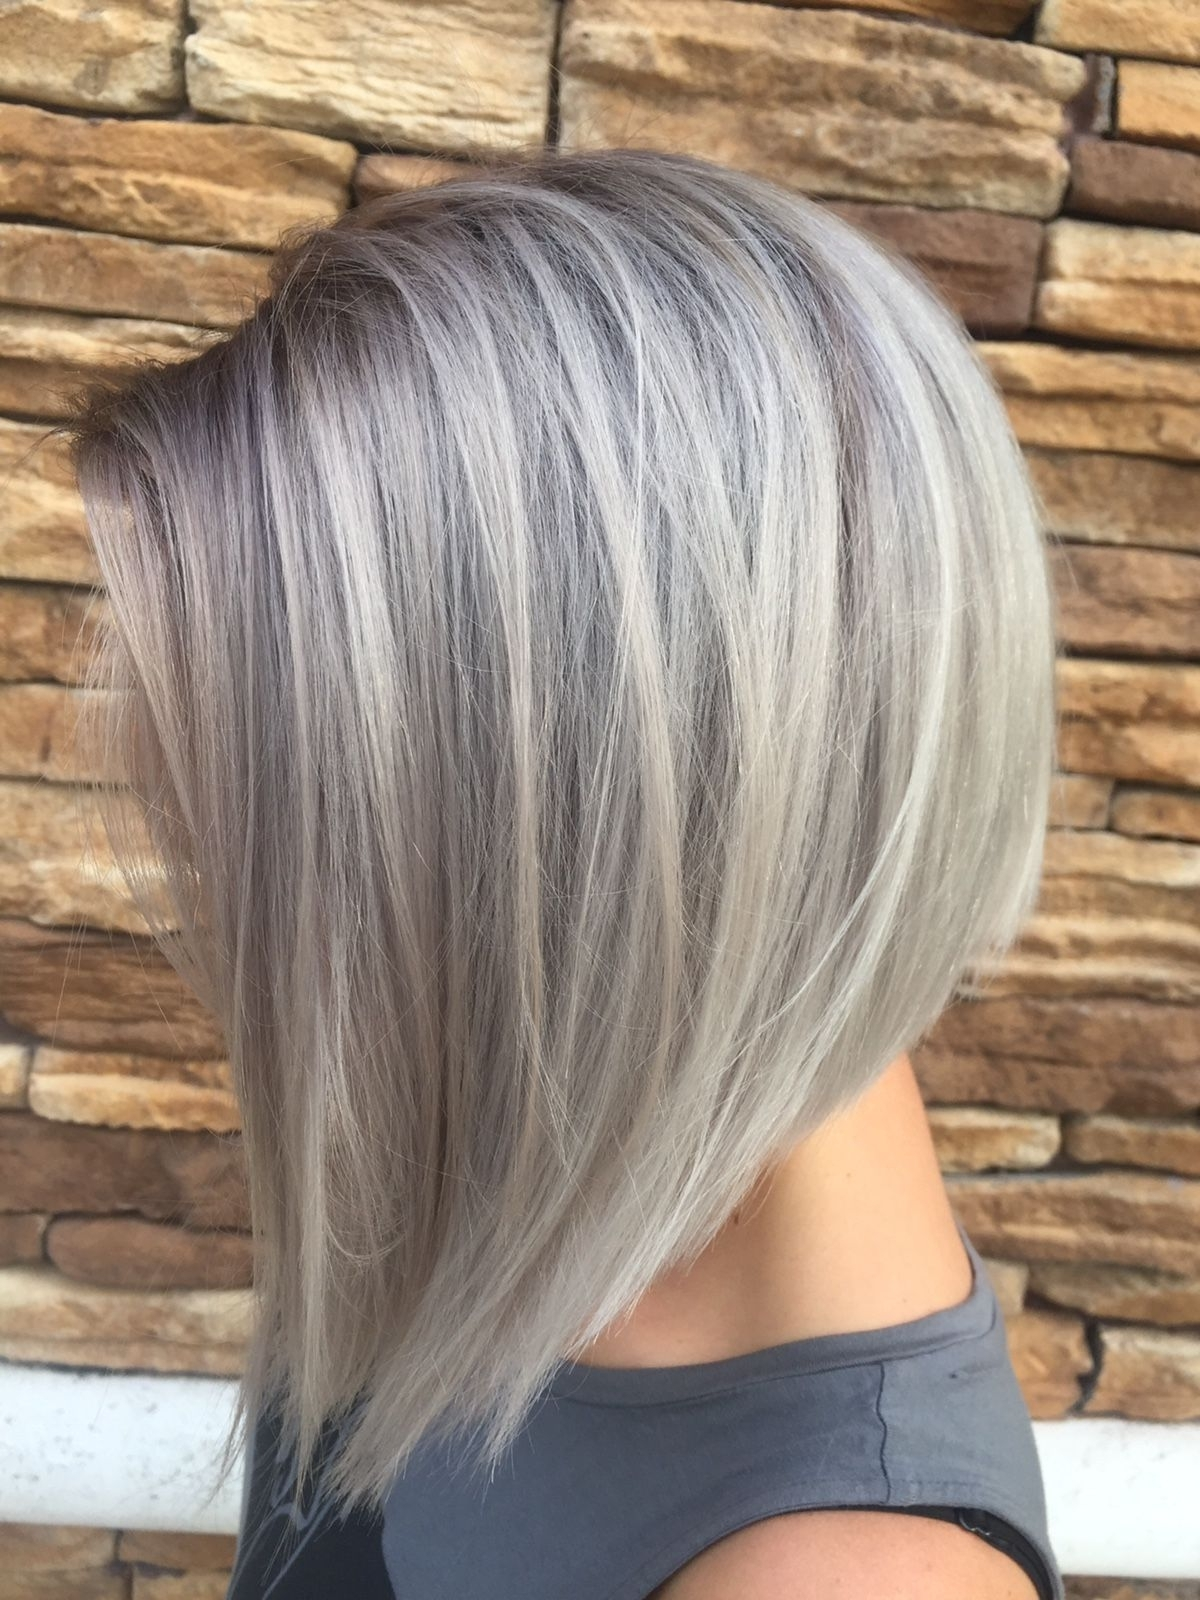 Widely Used Striking Angled Platinum Lob Blonde Hairstyles With Regard To Braids, Buns, And Twists!: Step By Step Tutorials For 82 Fabulous (View 20 of 20)